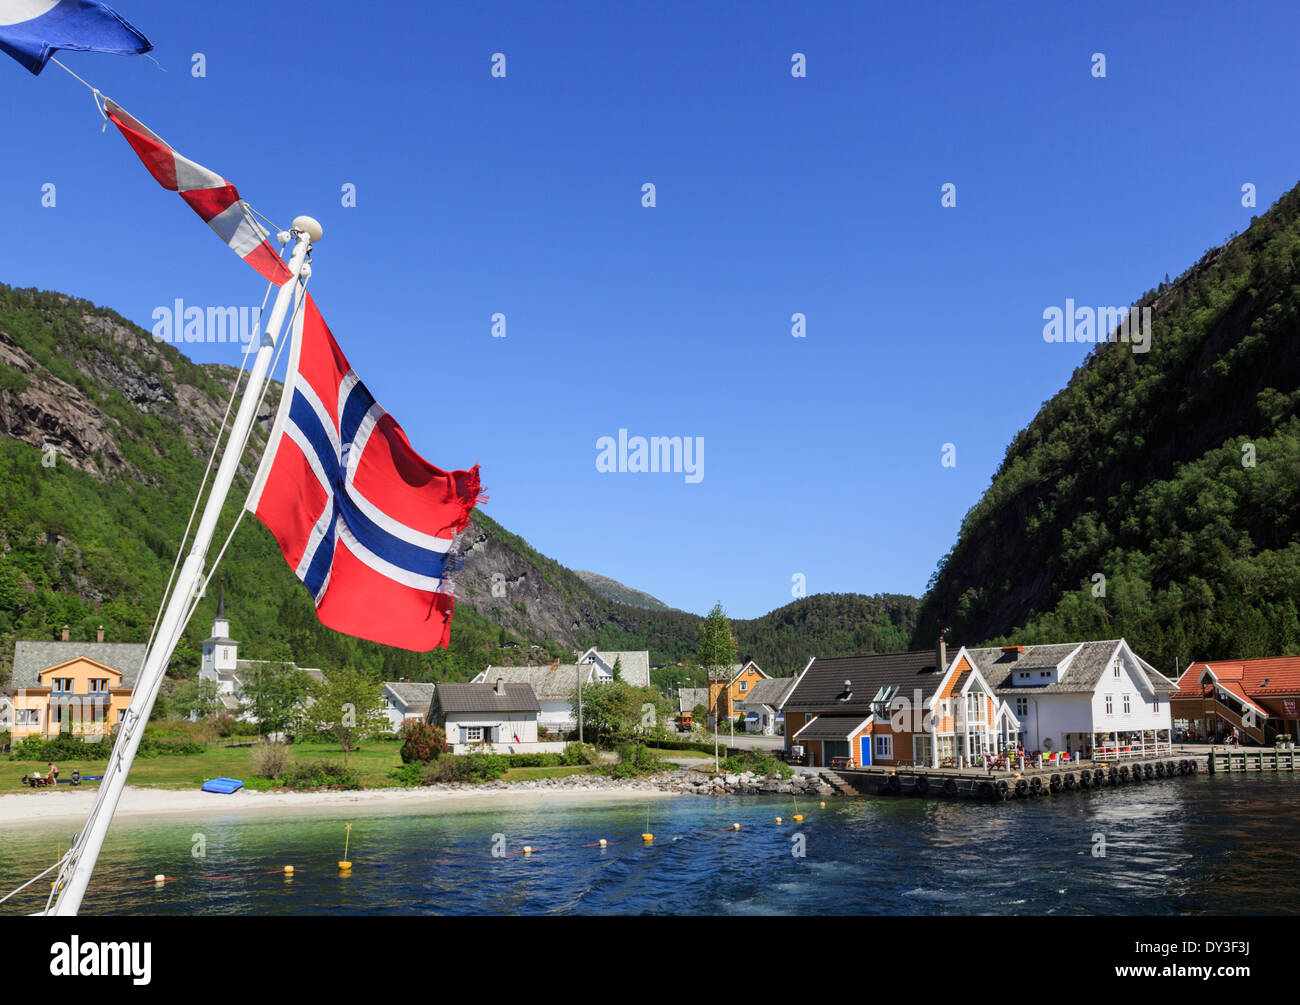 norway flag on sightseeing boat on mofjorden leaving pretty